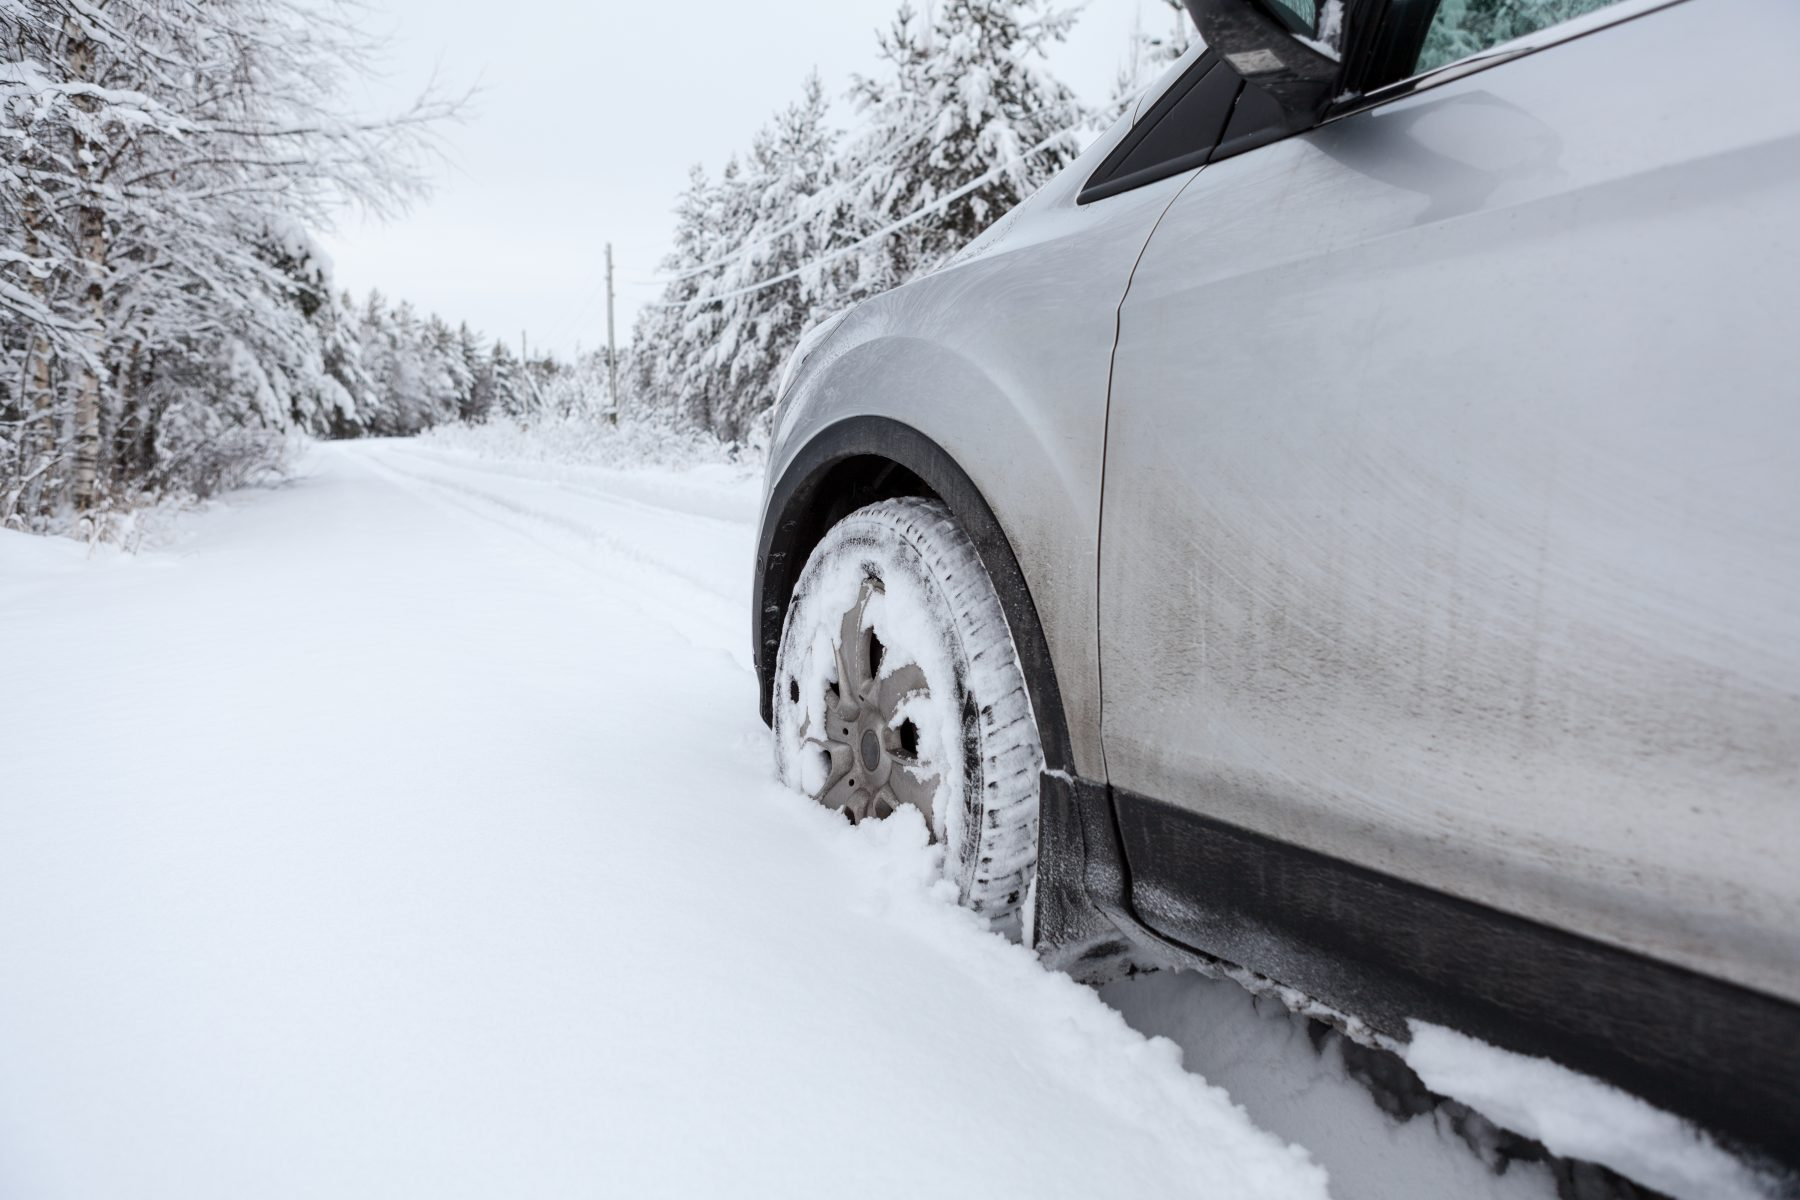 How to get your vehicle unstuck from snow | Kitchener Auto Parts